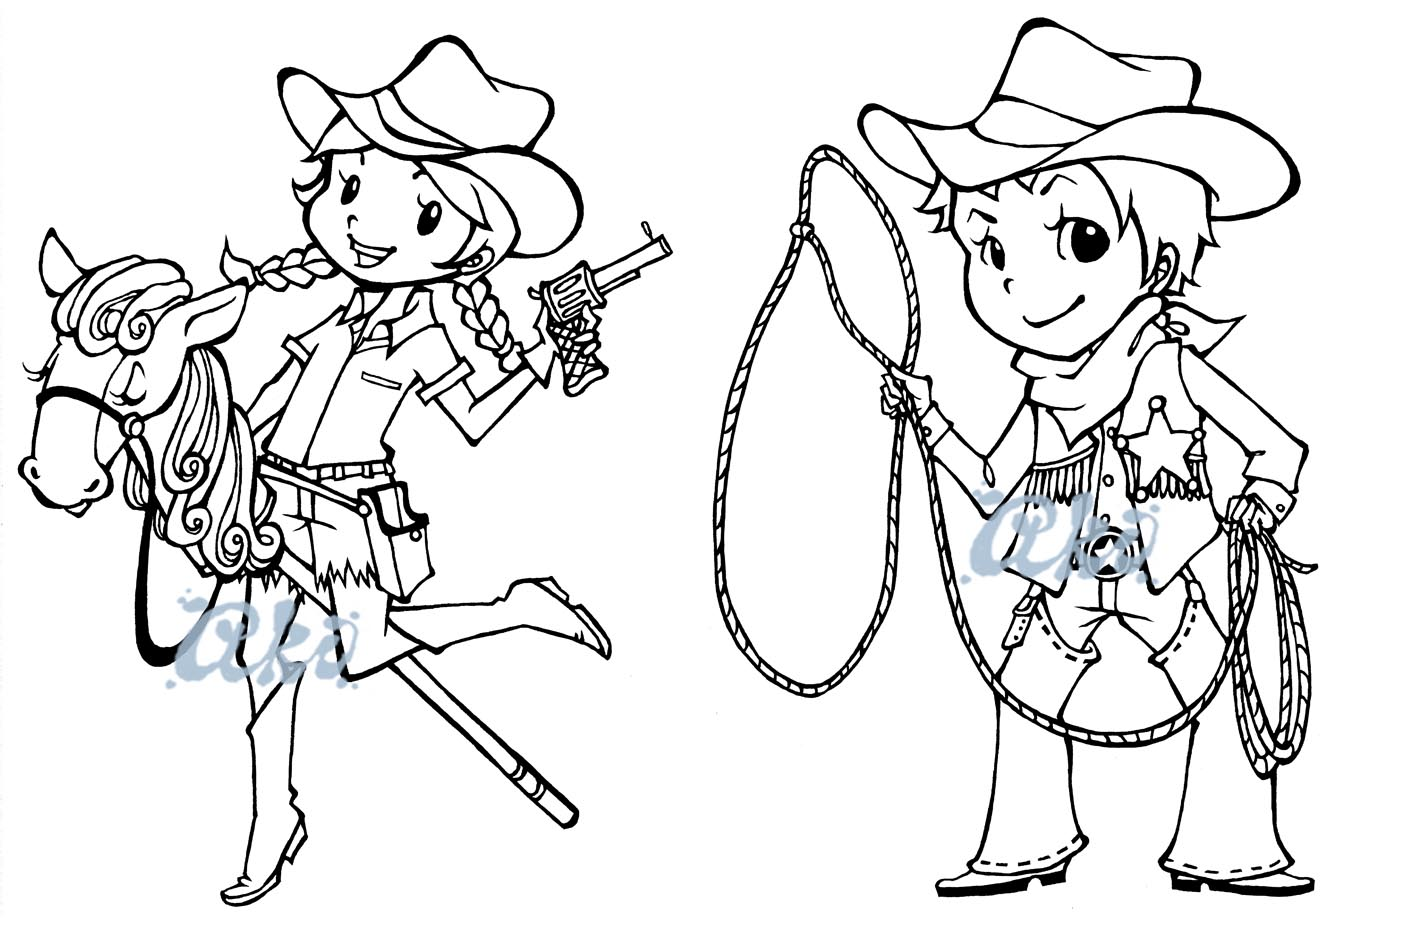 Cowboy Cowgirl Coloring Pages At Getdrawings